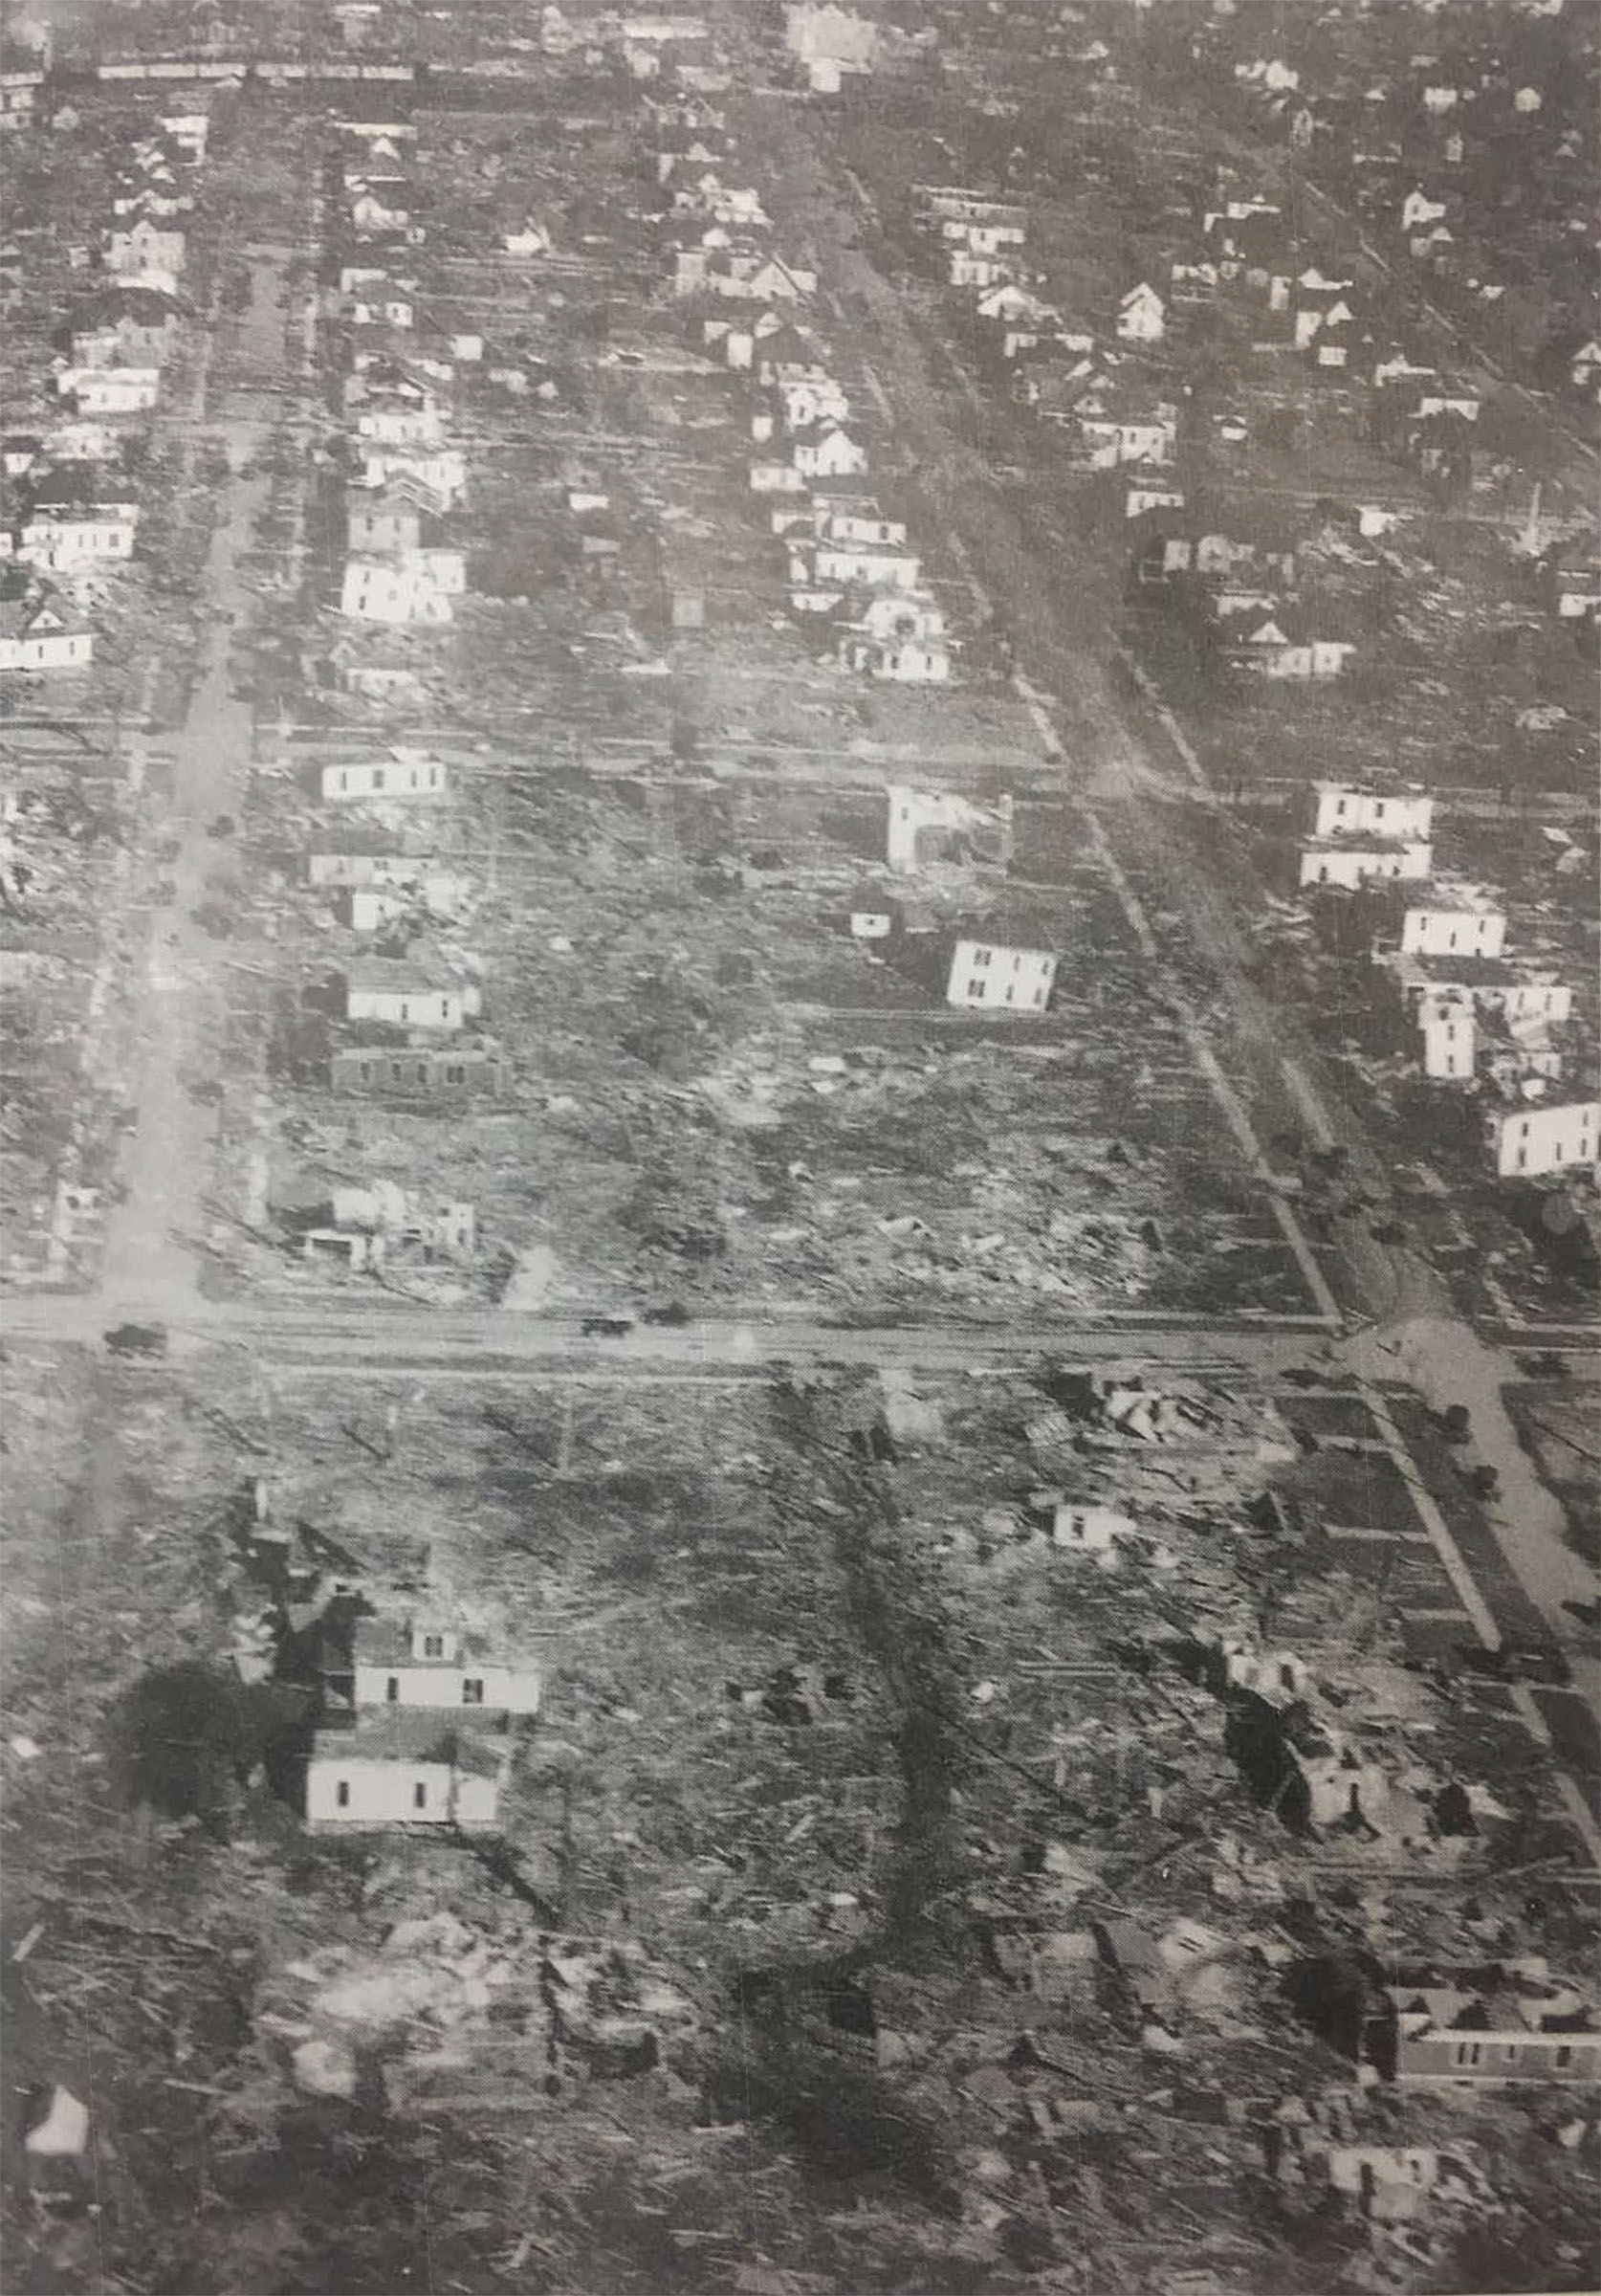 Aerial image of buildings damaged in the Tri-State Tornado, 1925.